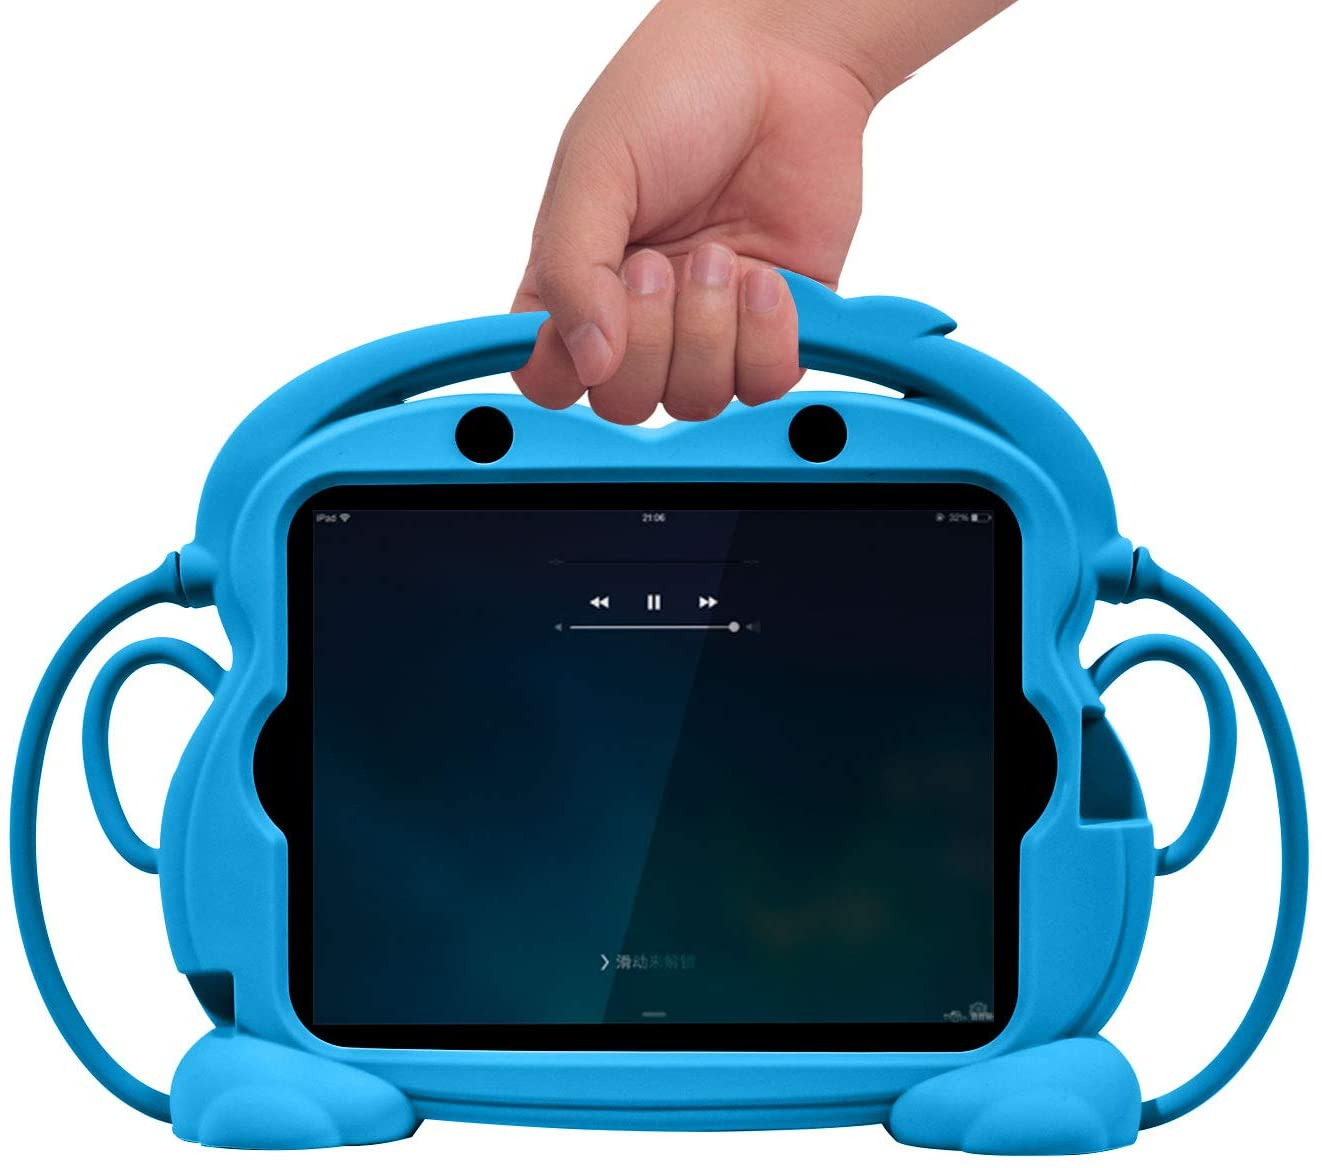 CHIN FAI iPad 2 3 4 Case for Kids, Child Proof Silicone Protective Car Case Cute Monkey Handle Stand Cover for Apple iPad 2nd 3rd 4th Generation (Blue)